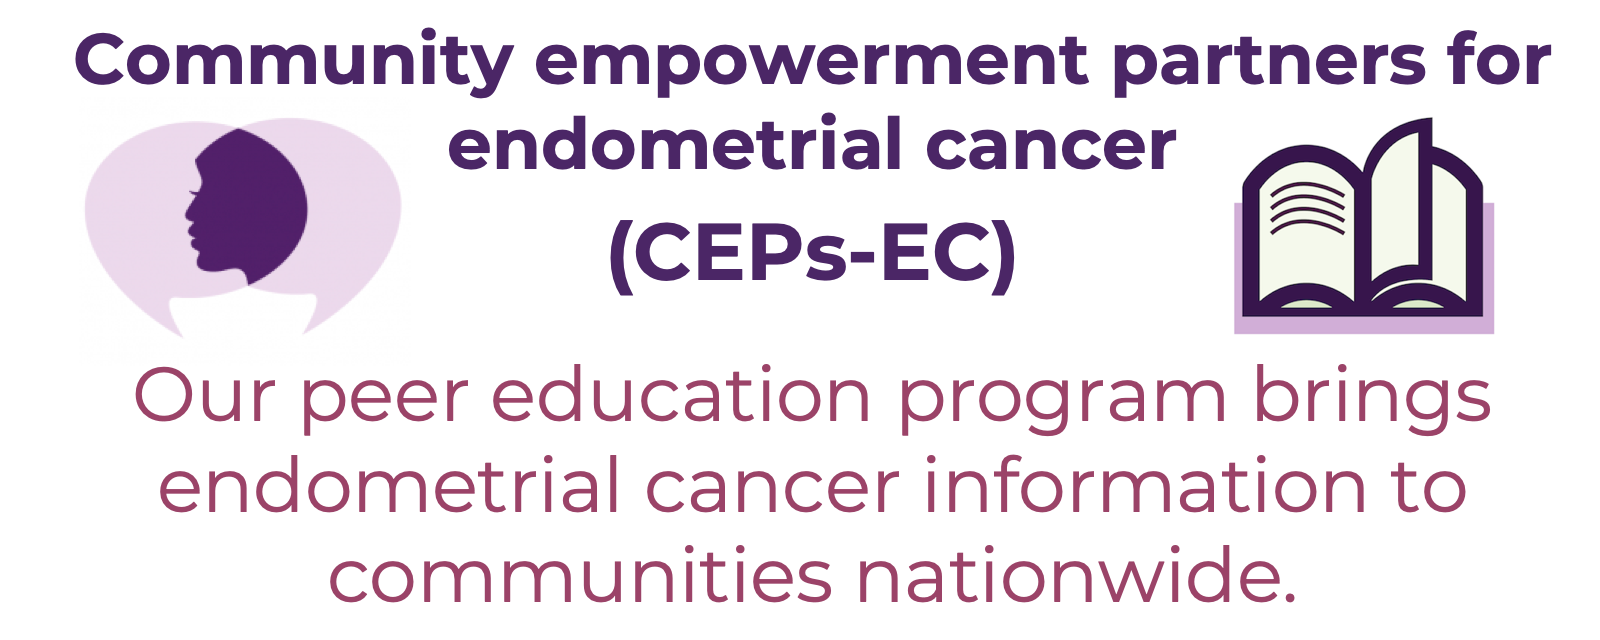 Community Empowerment Partners for Endometrial Cancer